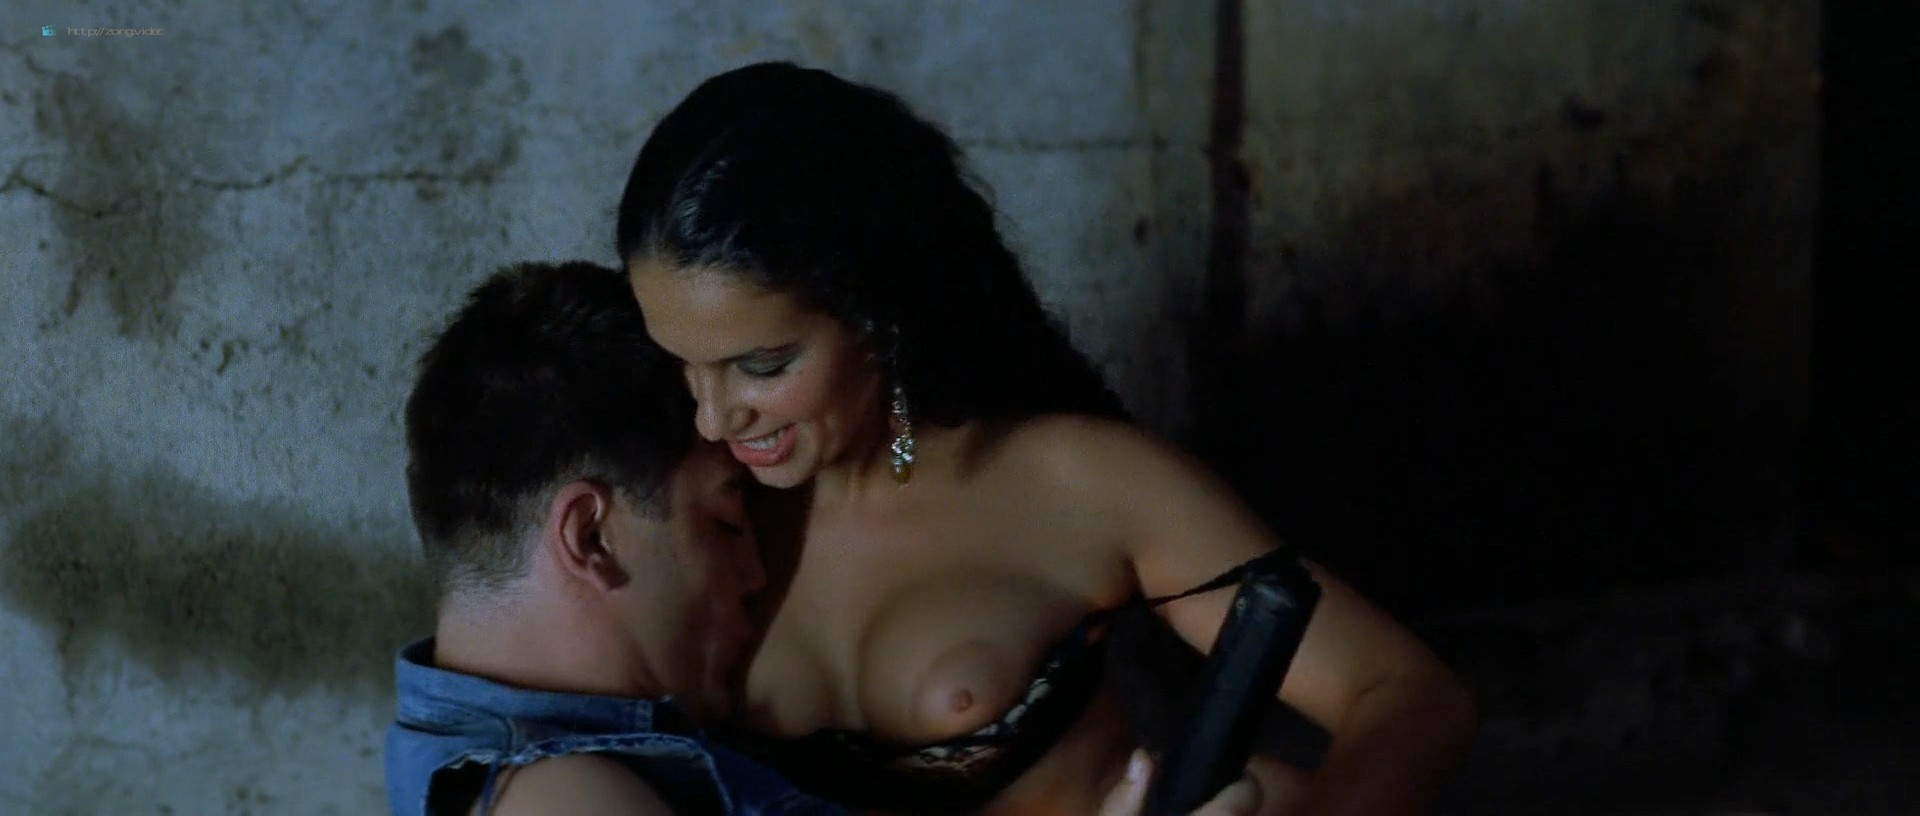 Maribel Verdú nude full frontal Maria de Medeiros and others nude - Huevos de oro (ES-1993) HD 1080p BluRay (20)